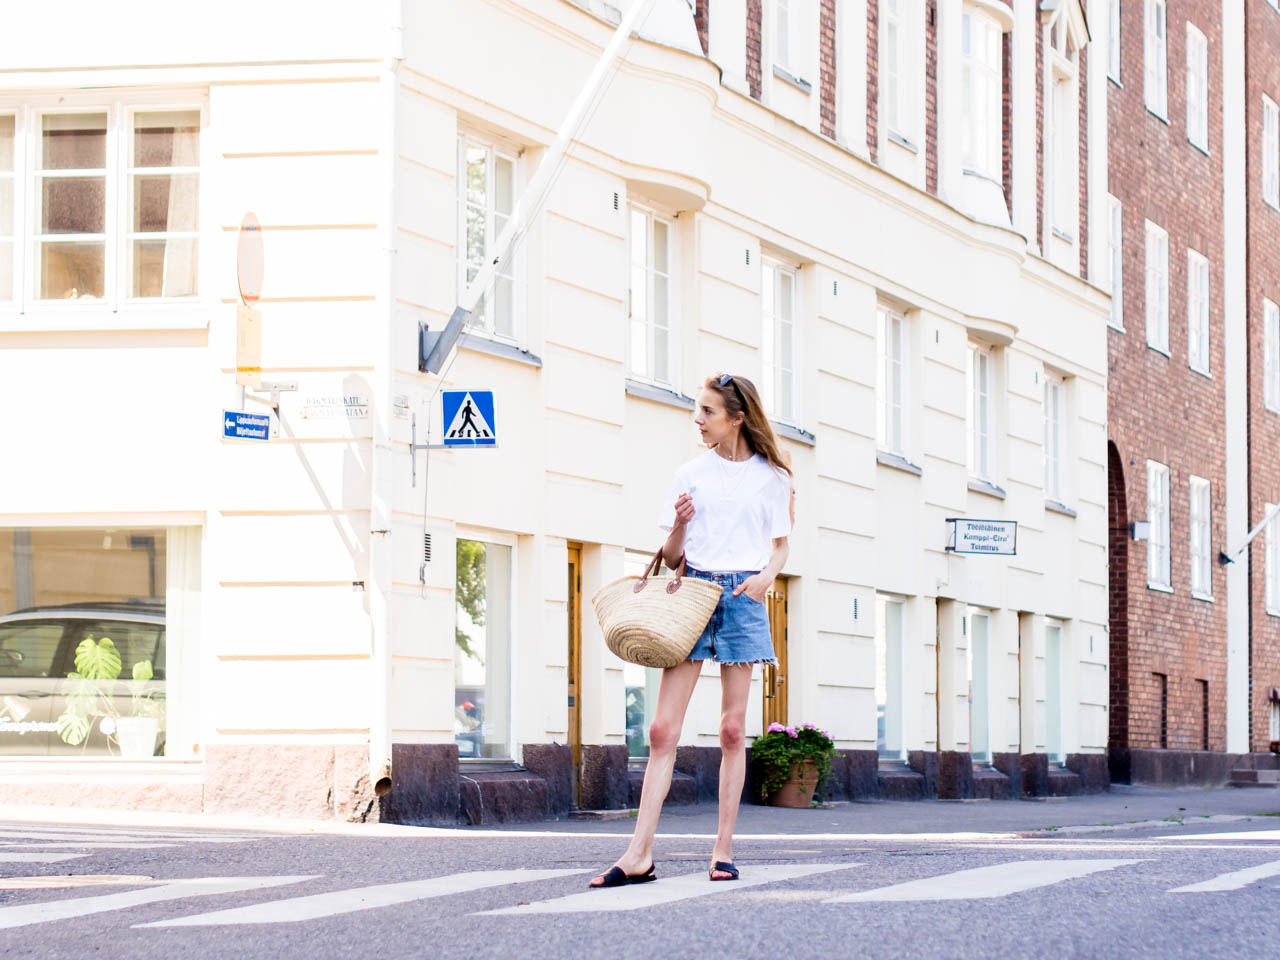 fashion-blogger-summer-outfit-inspiration-streetstyle-scandinavia-levis-denim-shorts-vintage-basket-bag